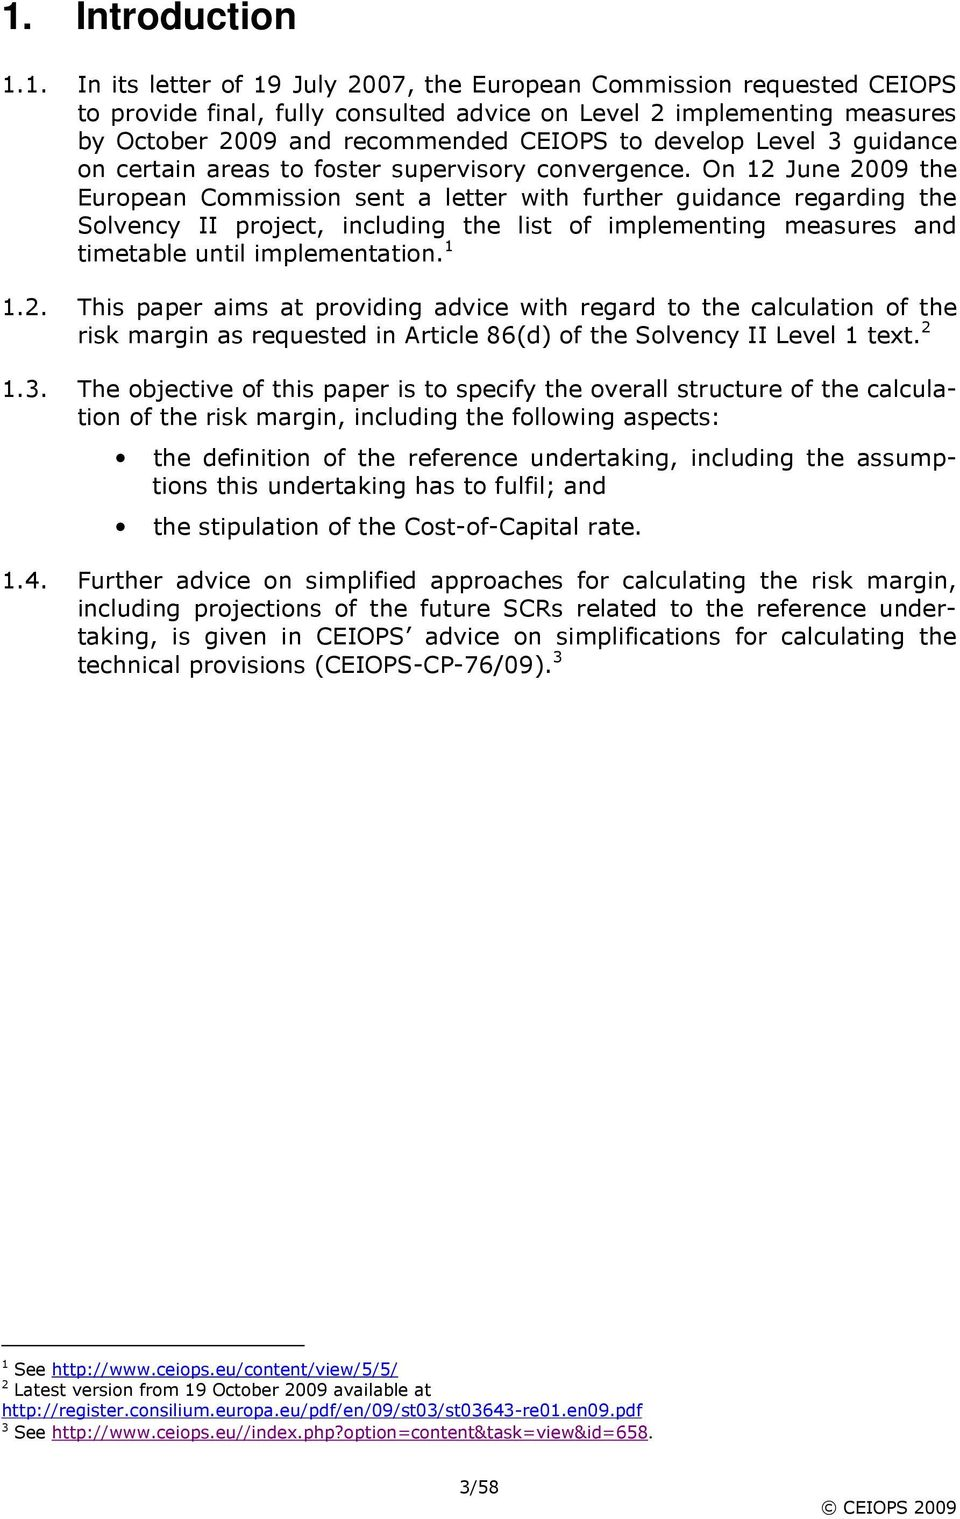 On 12 June 2009 the European Commission sent a letter with further guidance regarding the Solvency II project, including the list of implementing measures and timetable until implementation. 1 1.2. This paper aims at providing advice with regard to the calculation of the risk margin as requested in Article 86(d) of the Solvency II Level 1 text.